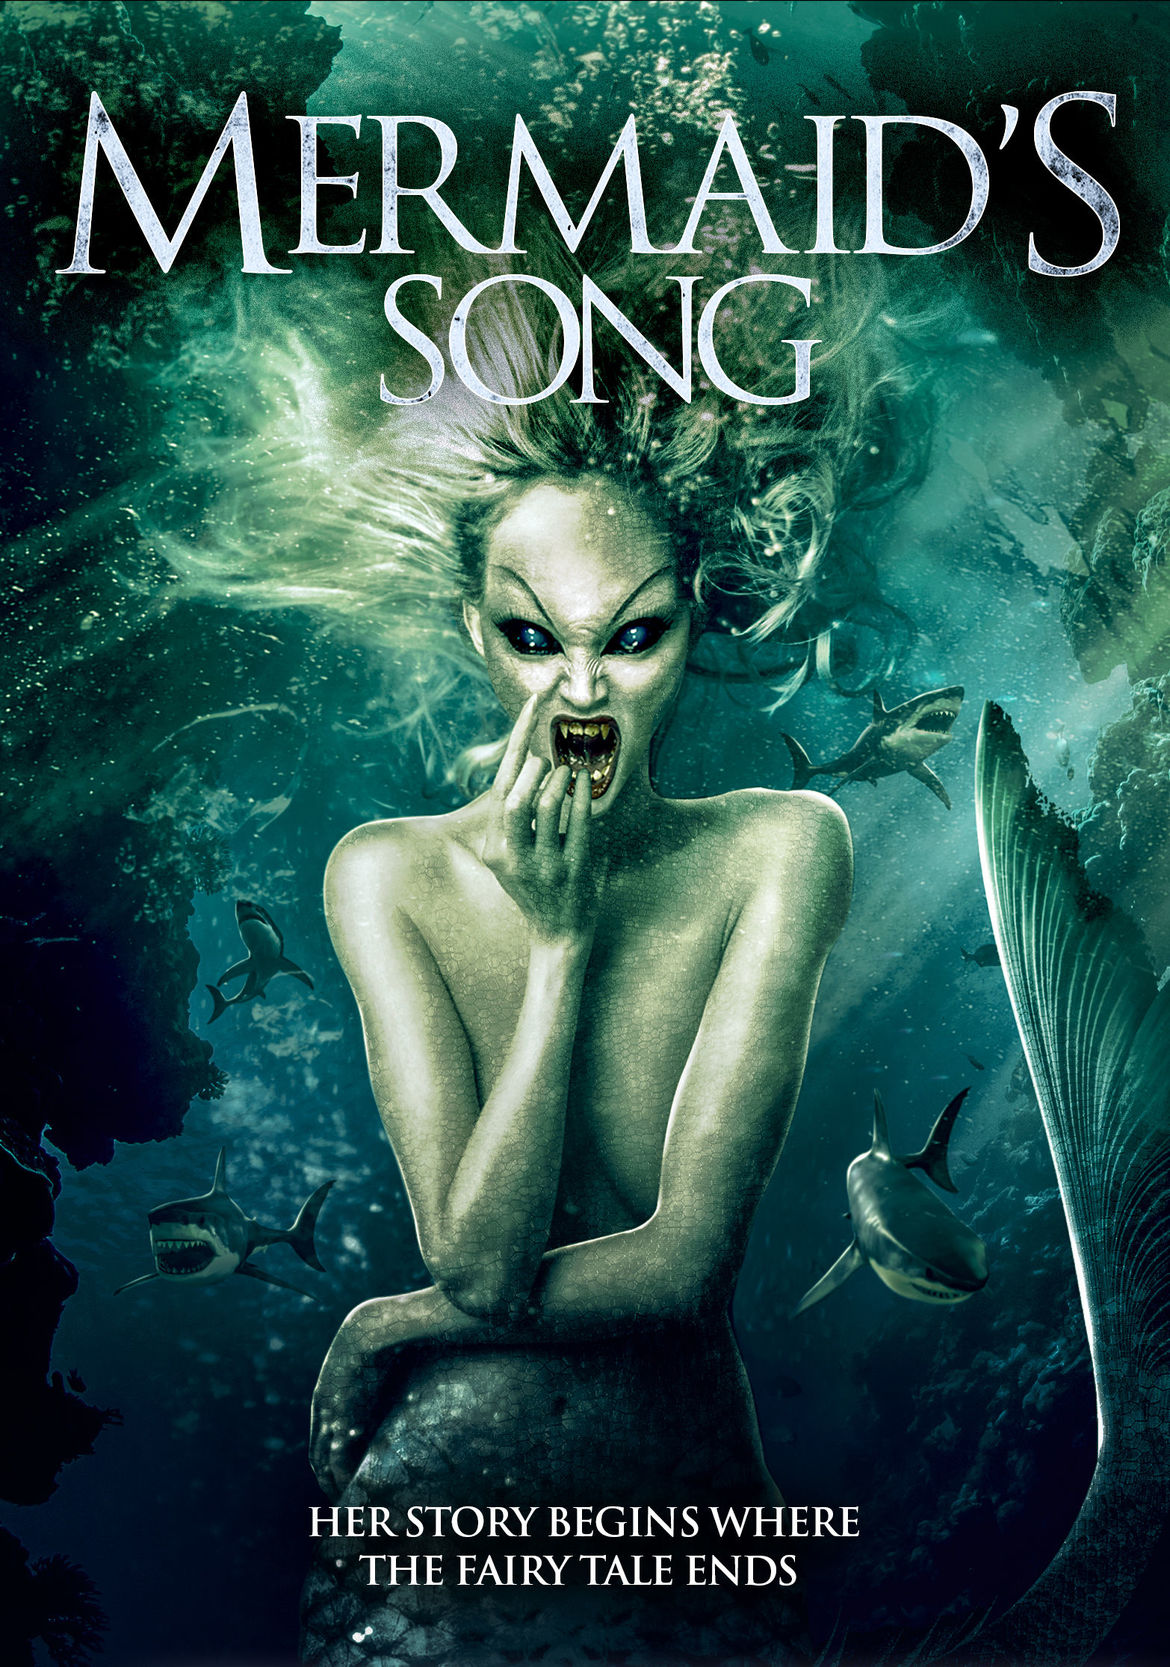 The Mermaids Song 2018 Poster